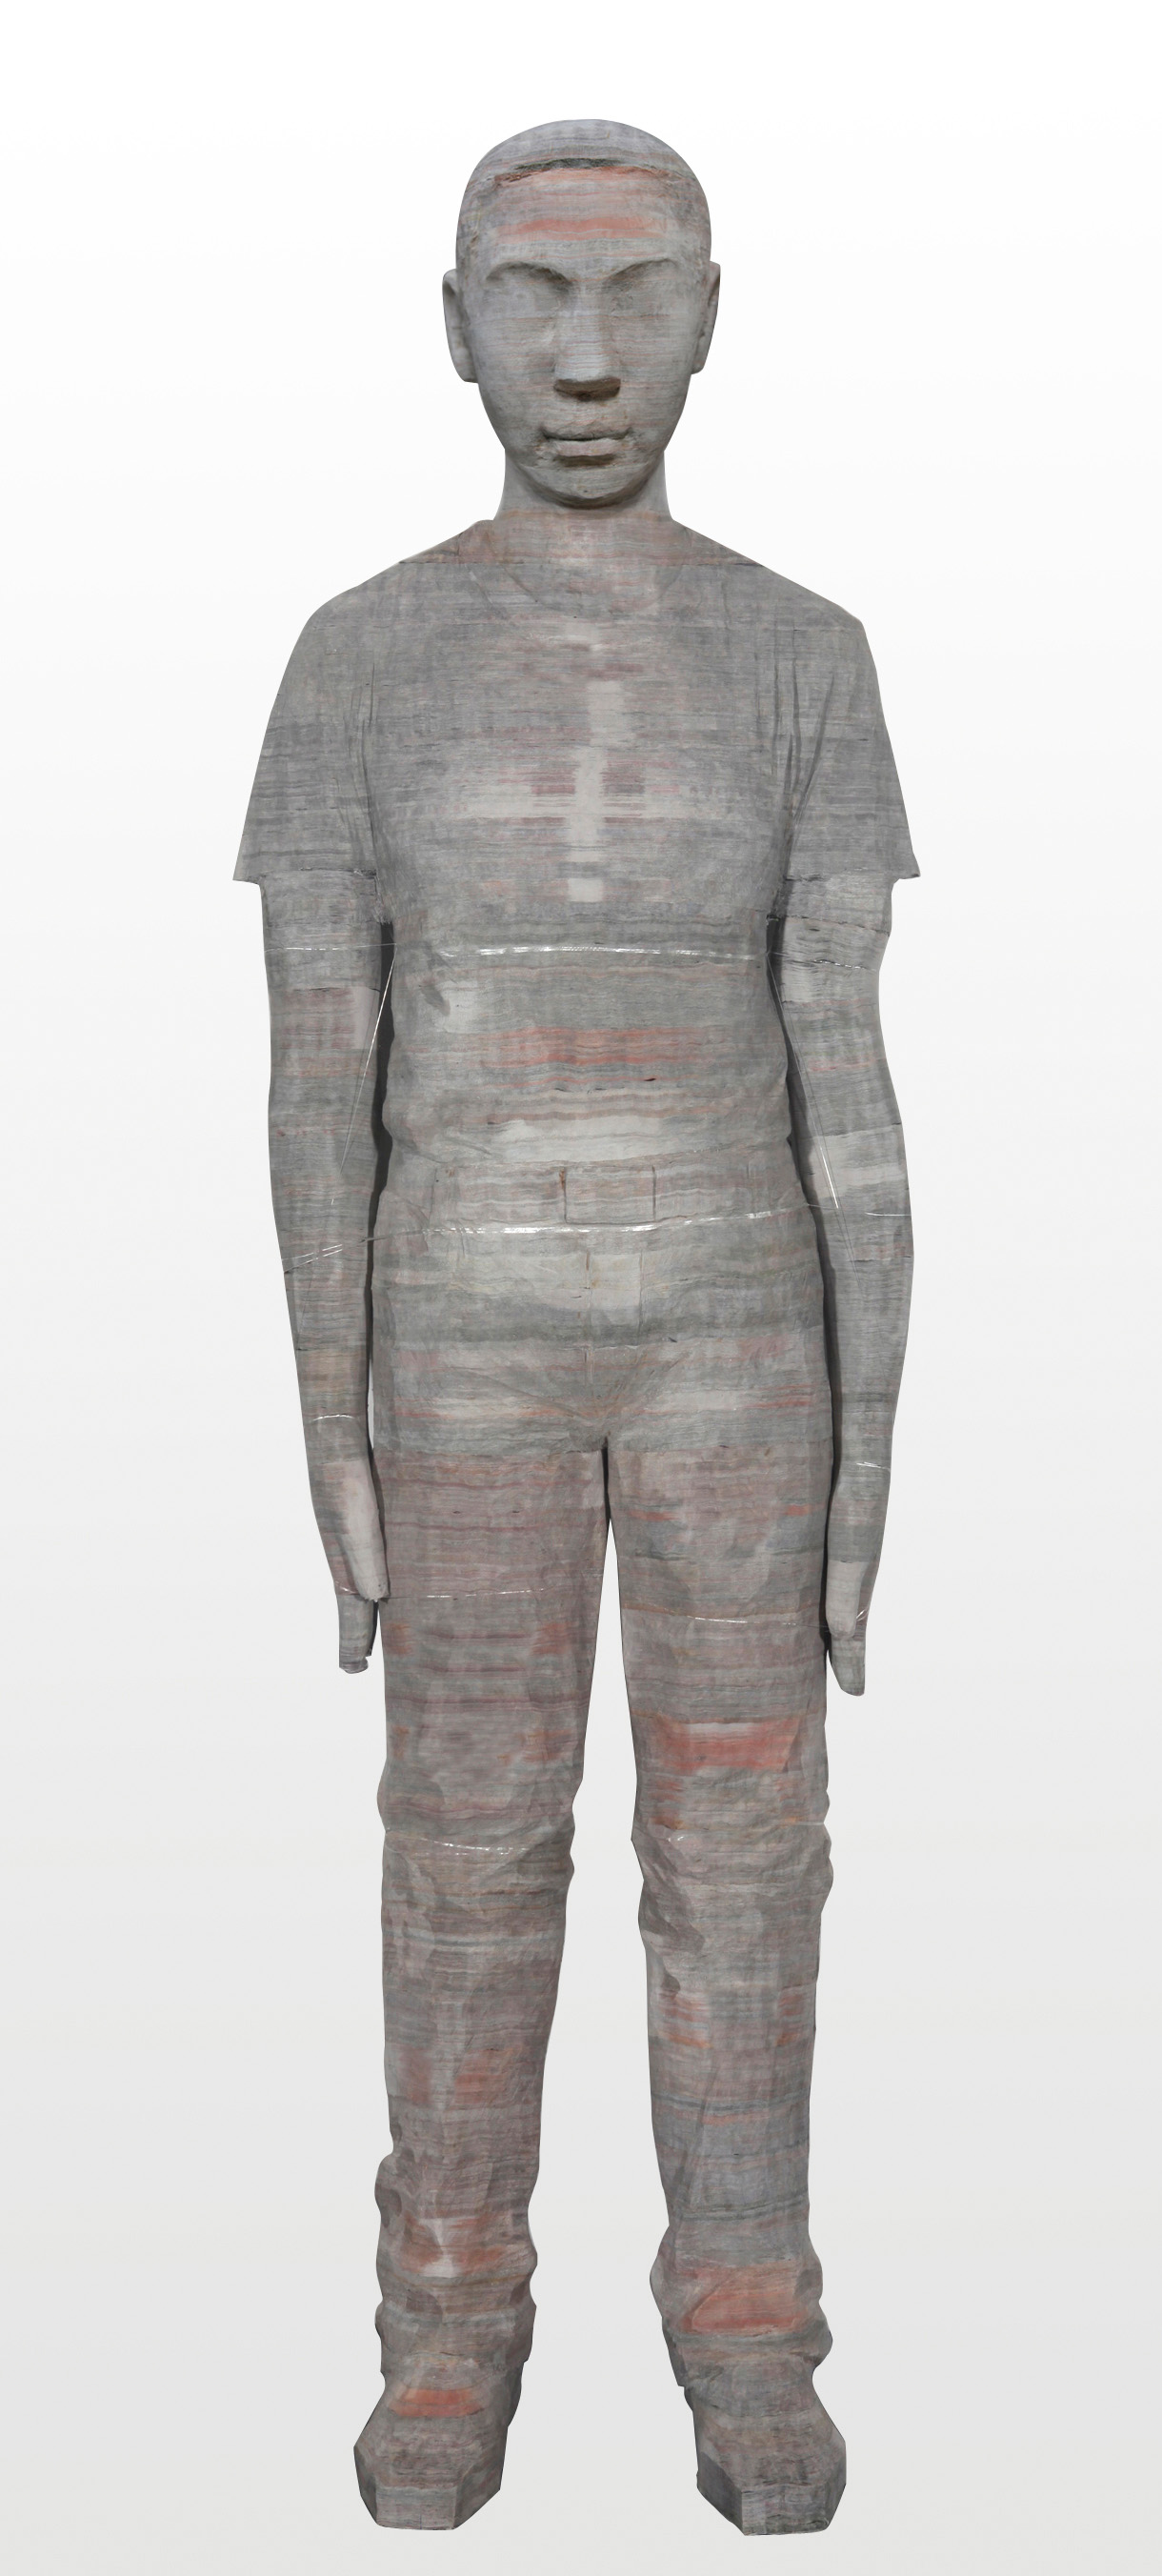 Li Hongbo, Cultured Man, (2012), newspaper, dimensions variable